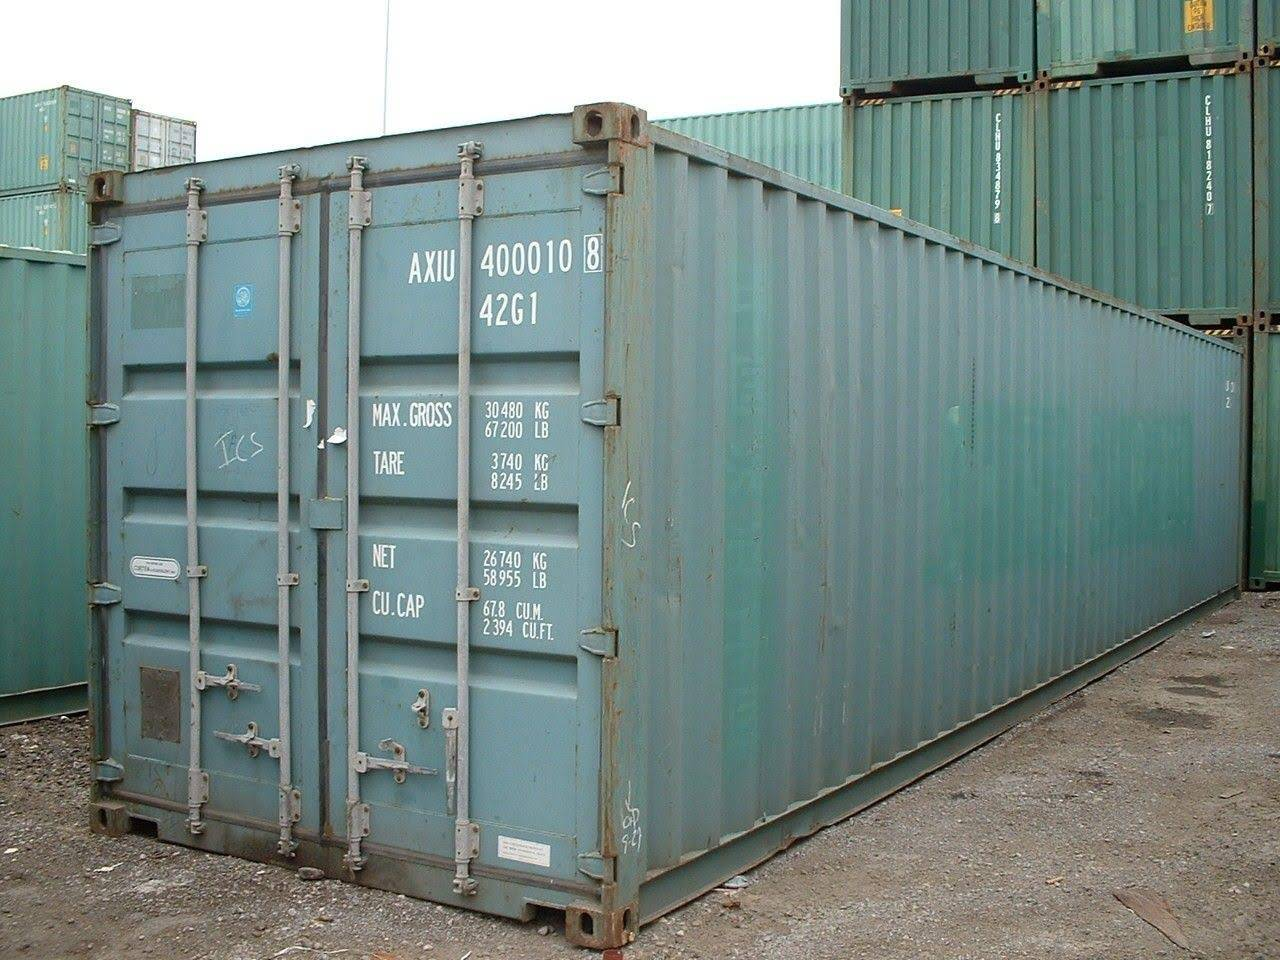 40 foot shipping container side view